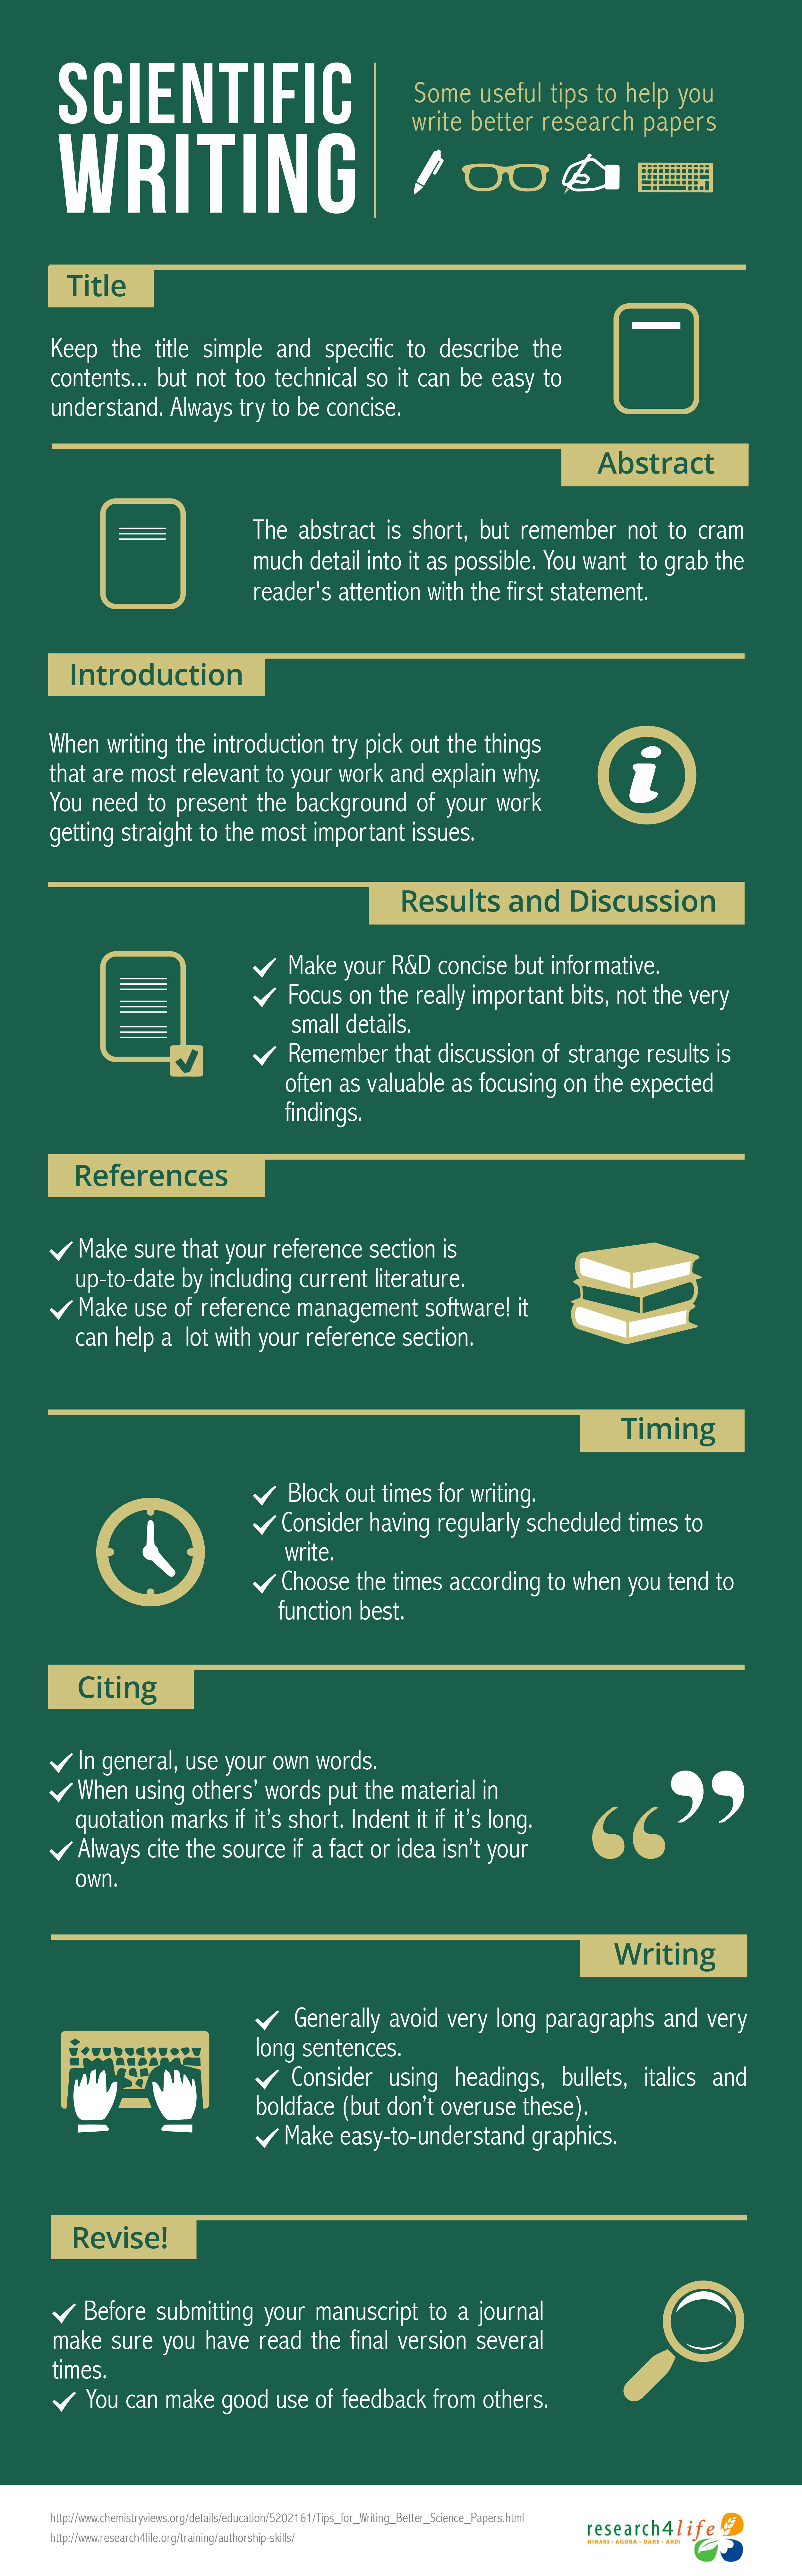 researchlifetips for writing a research paper researchlife writing a research paper